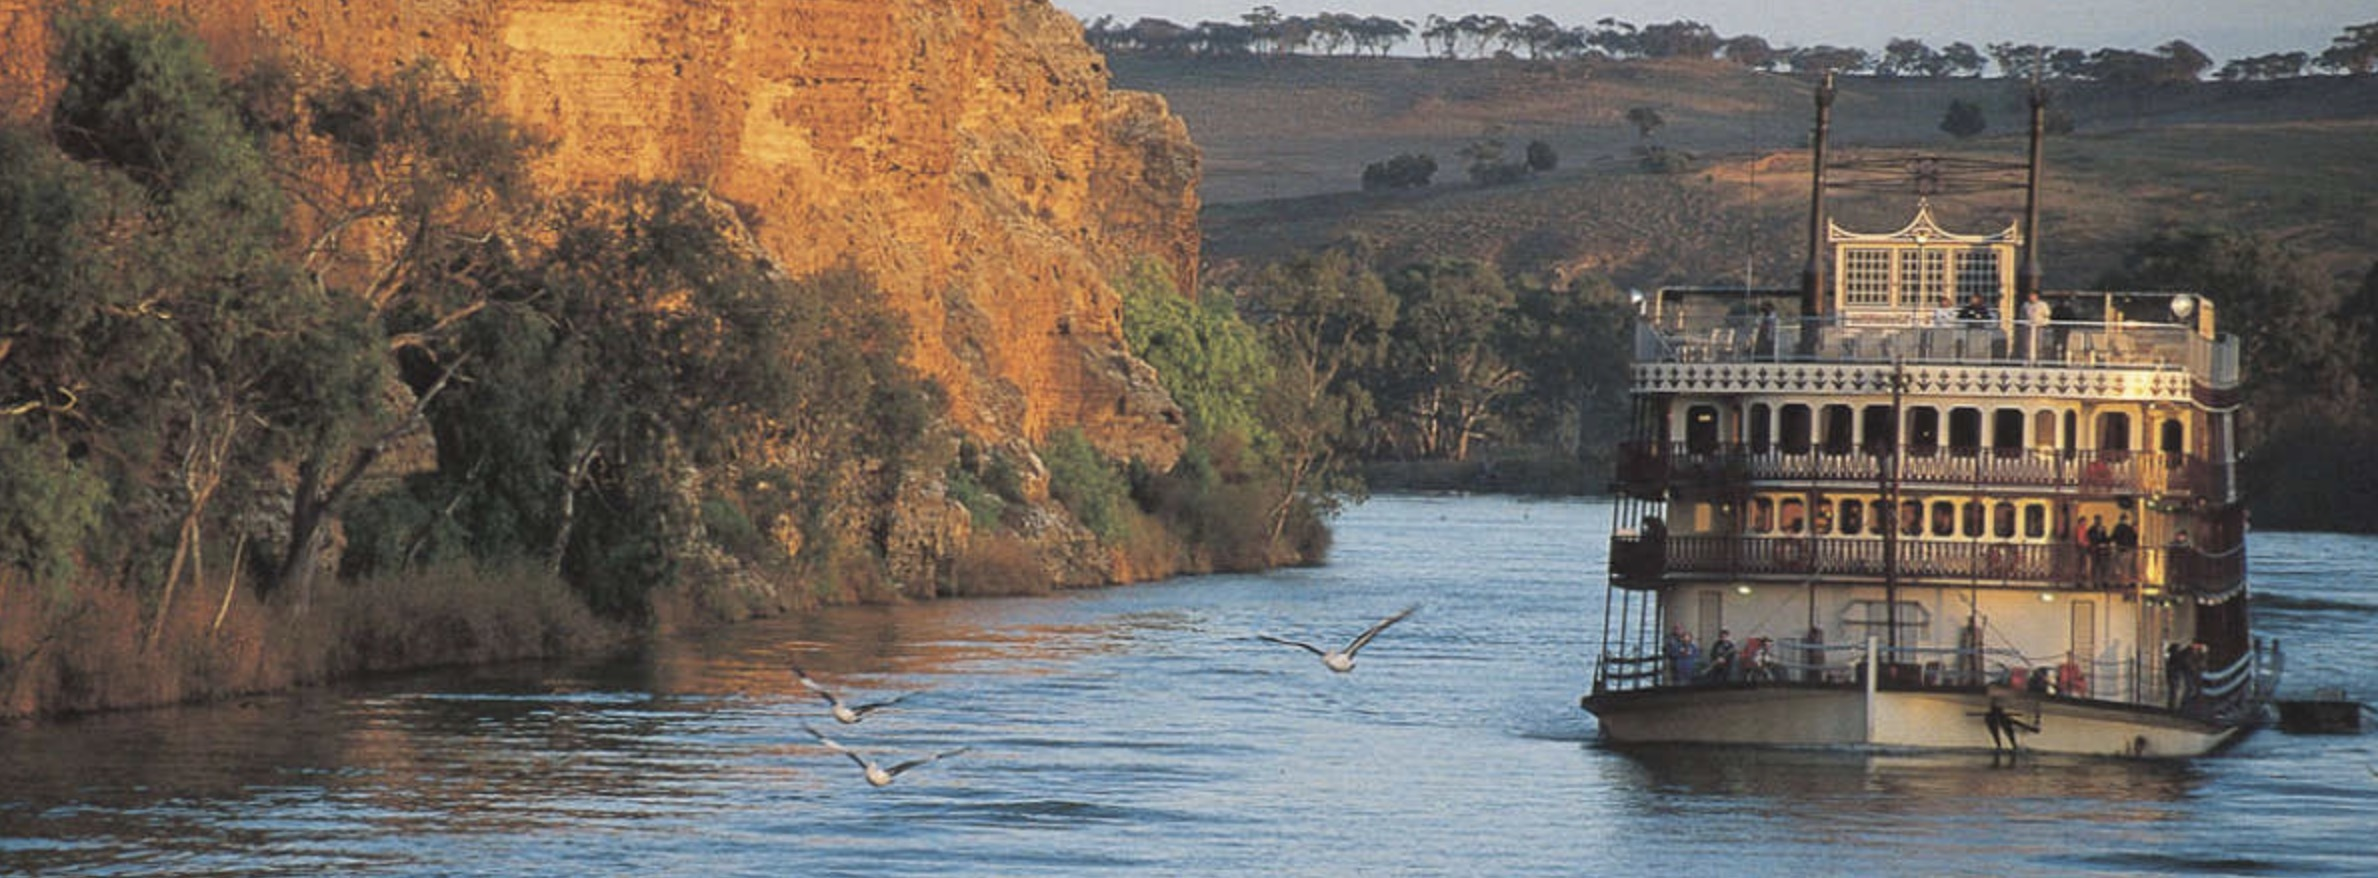 3 night murray river cruise captain cook cruises - HD 2378×878